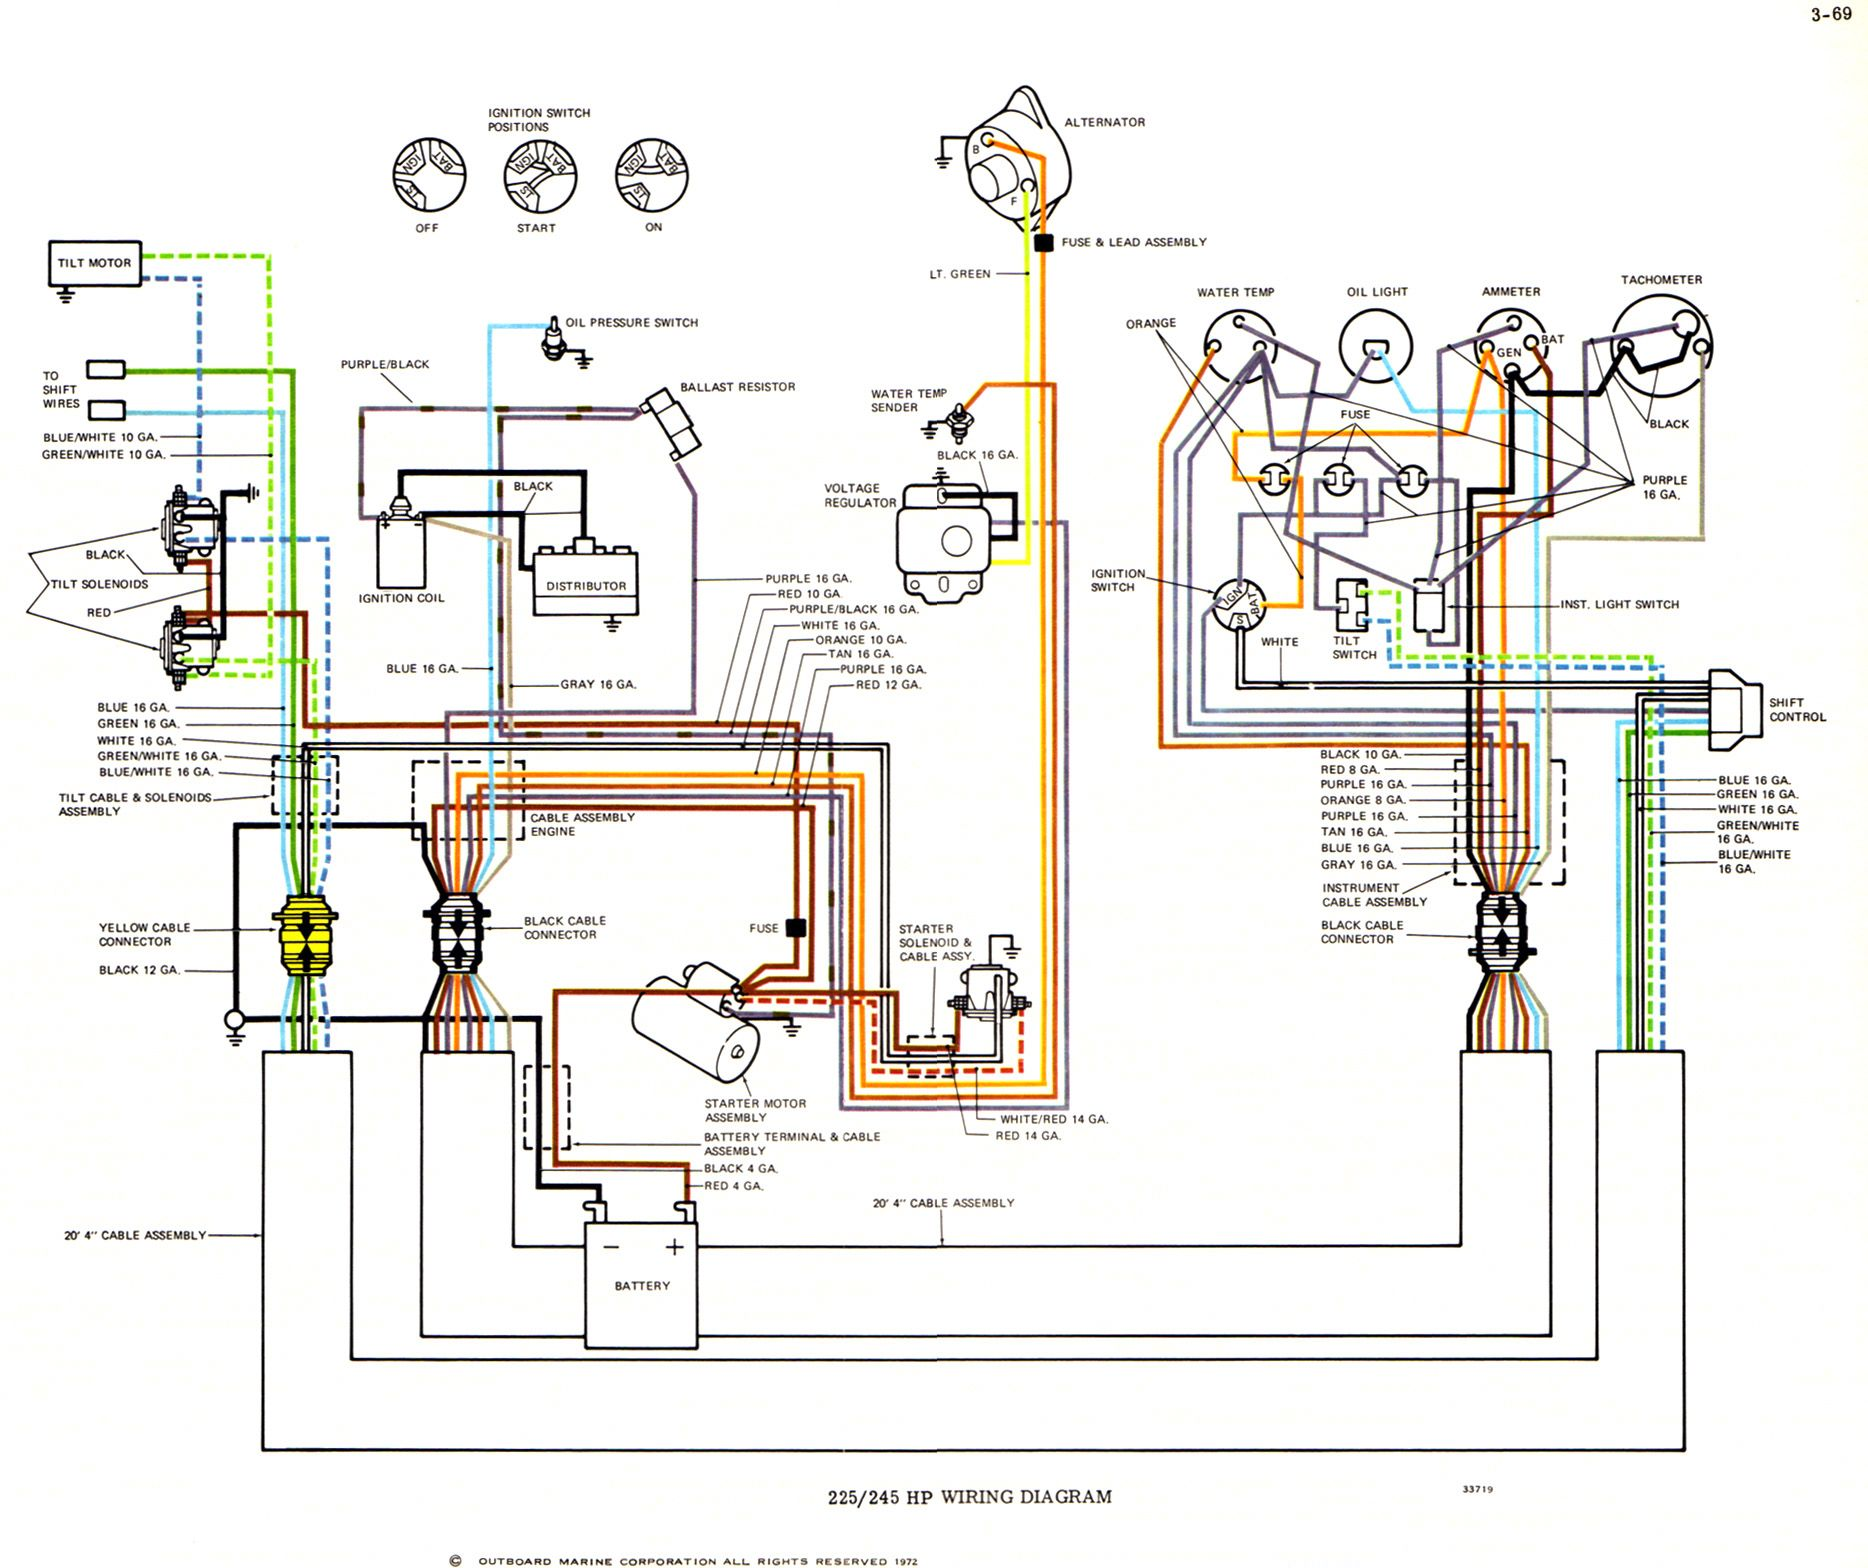 medium resolution of boat wiring electrical wiring diagram electric circuit house wiring boat engine